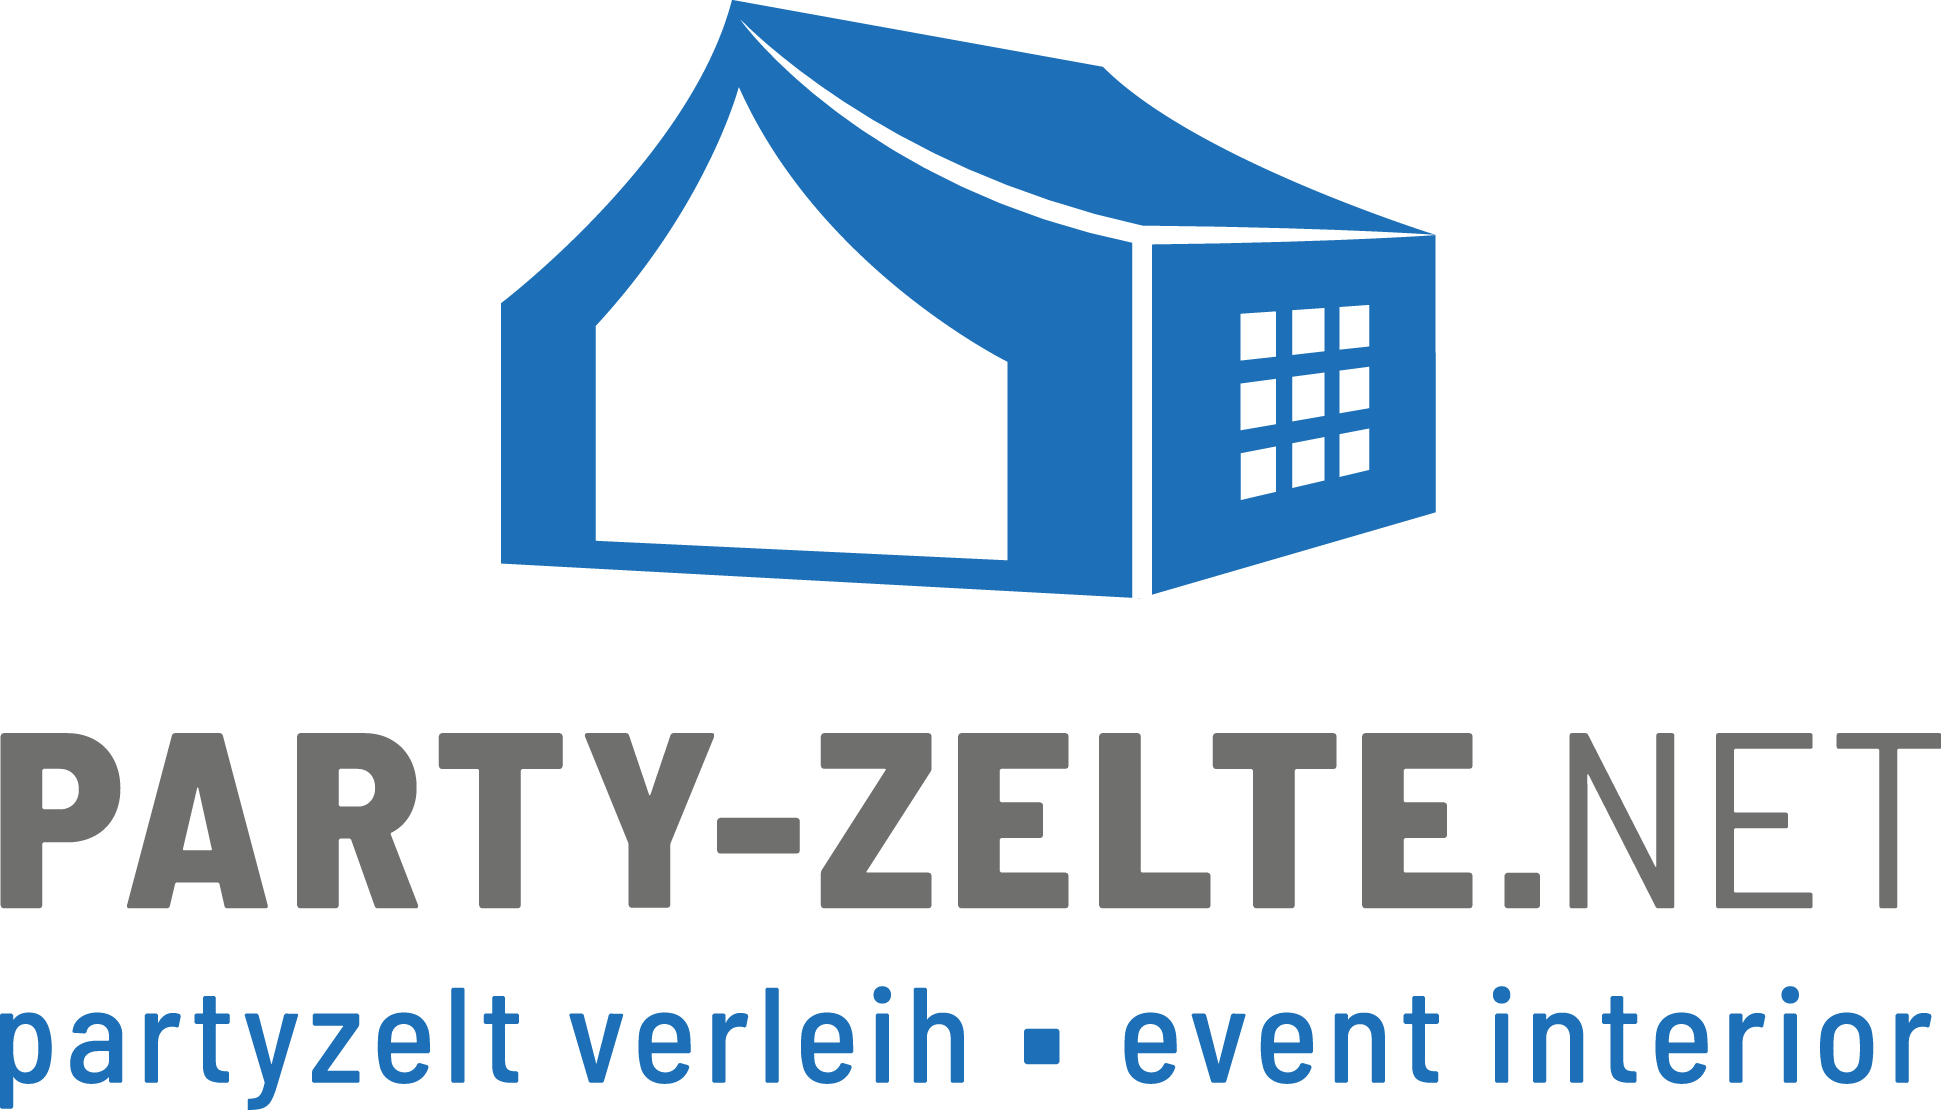 Party-Zelte.net